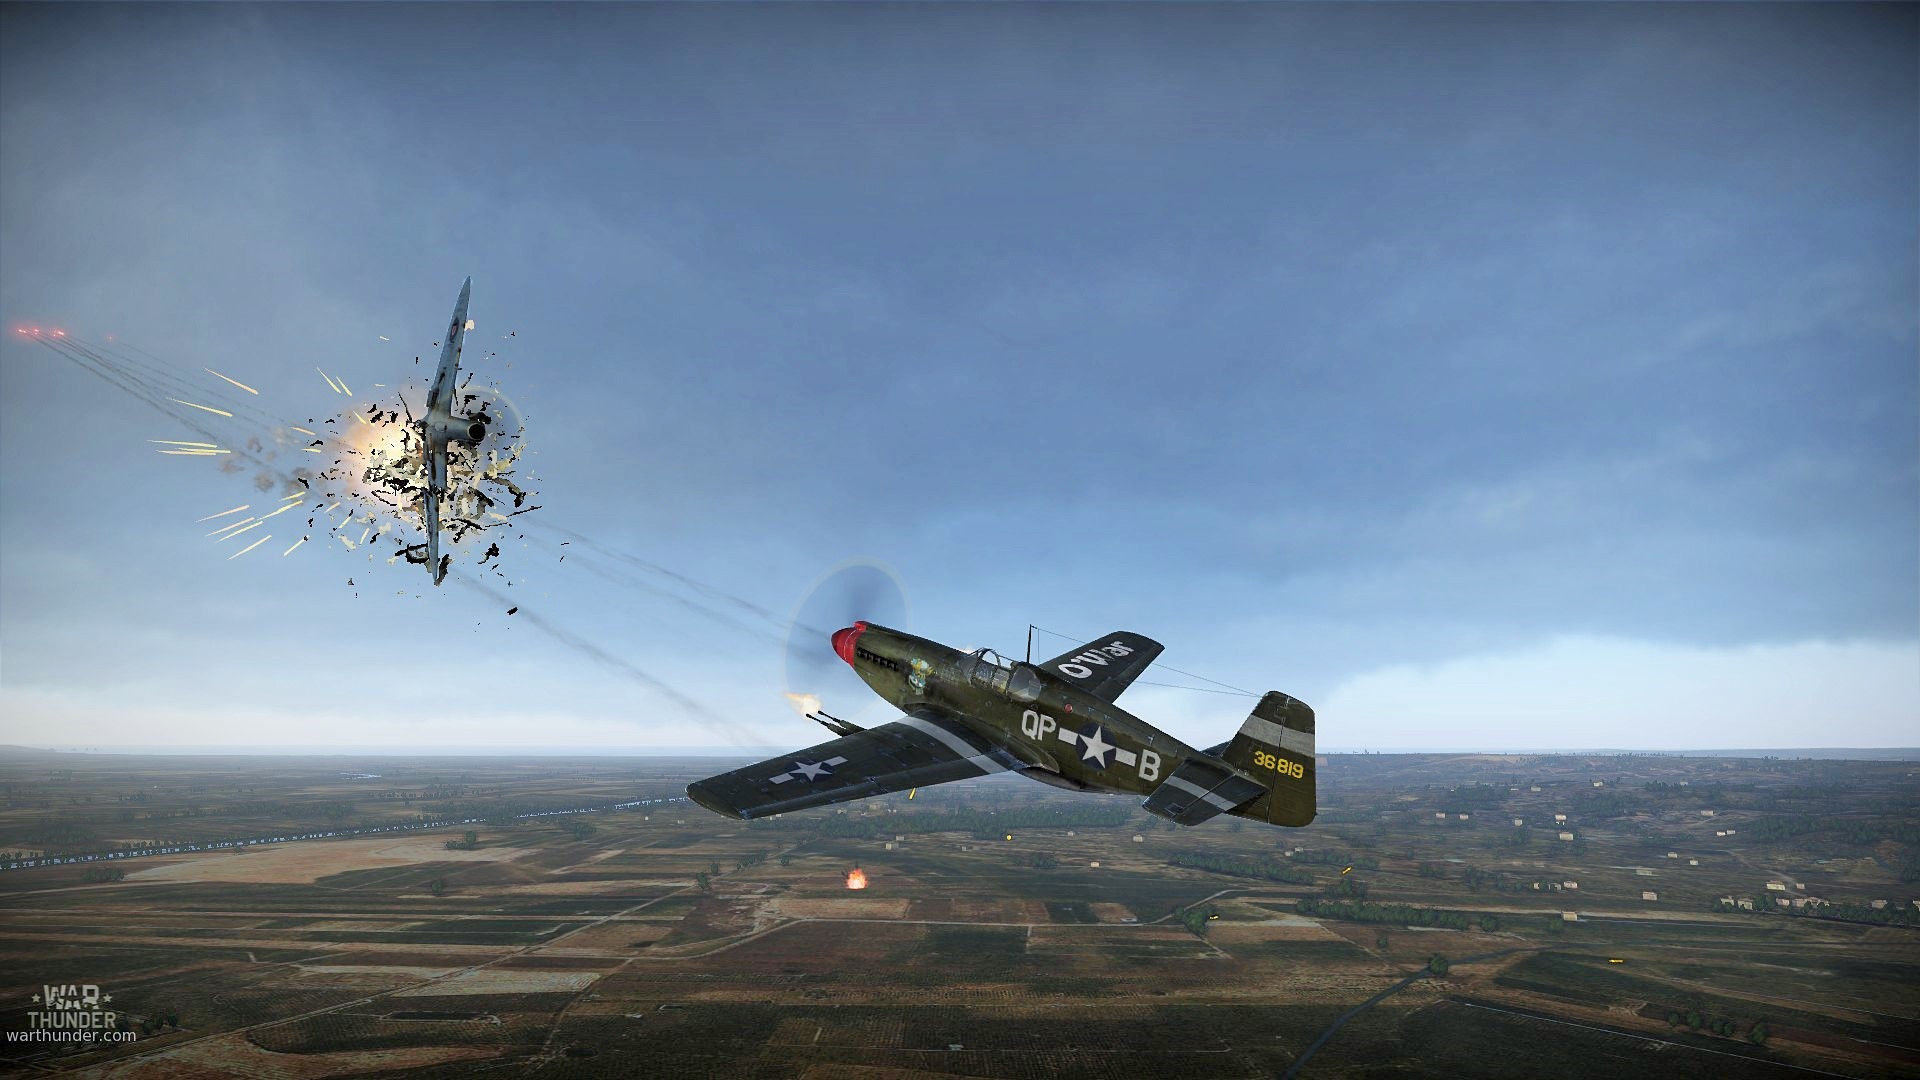 War thunder close call (4)